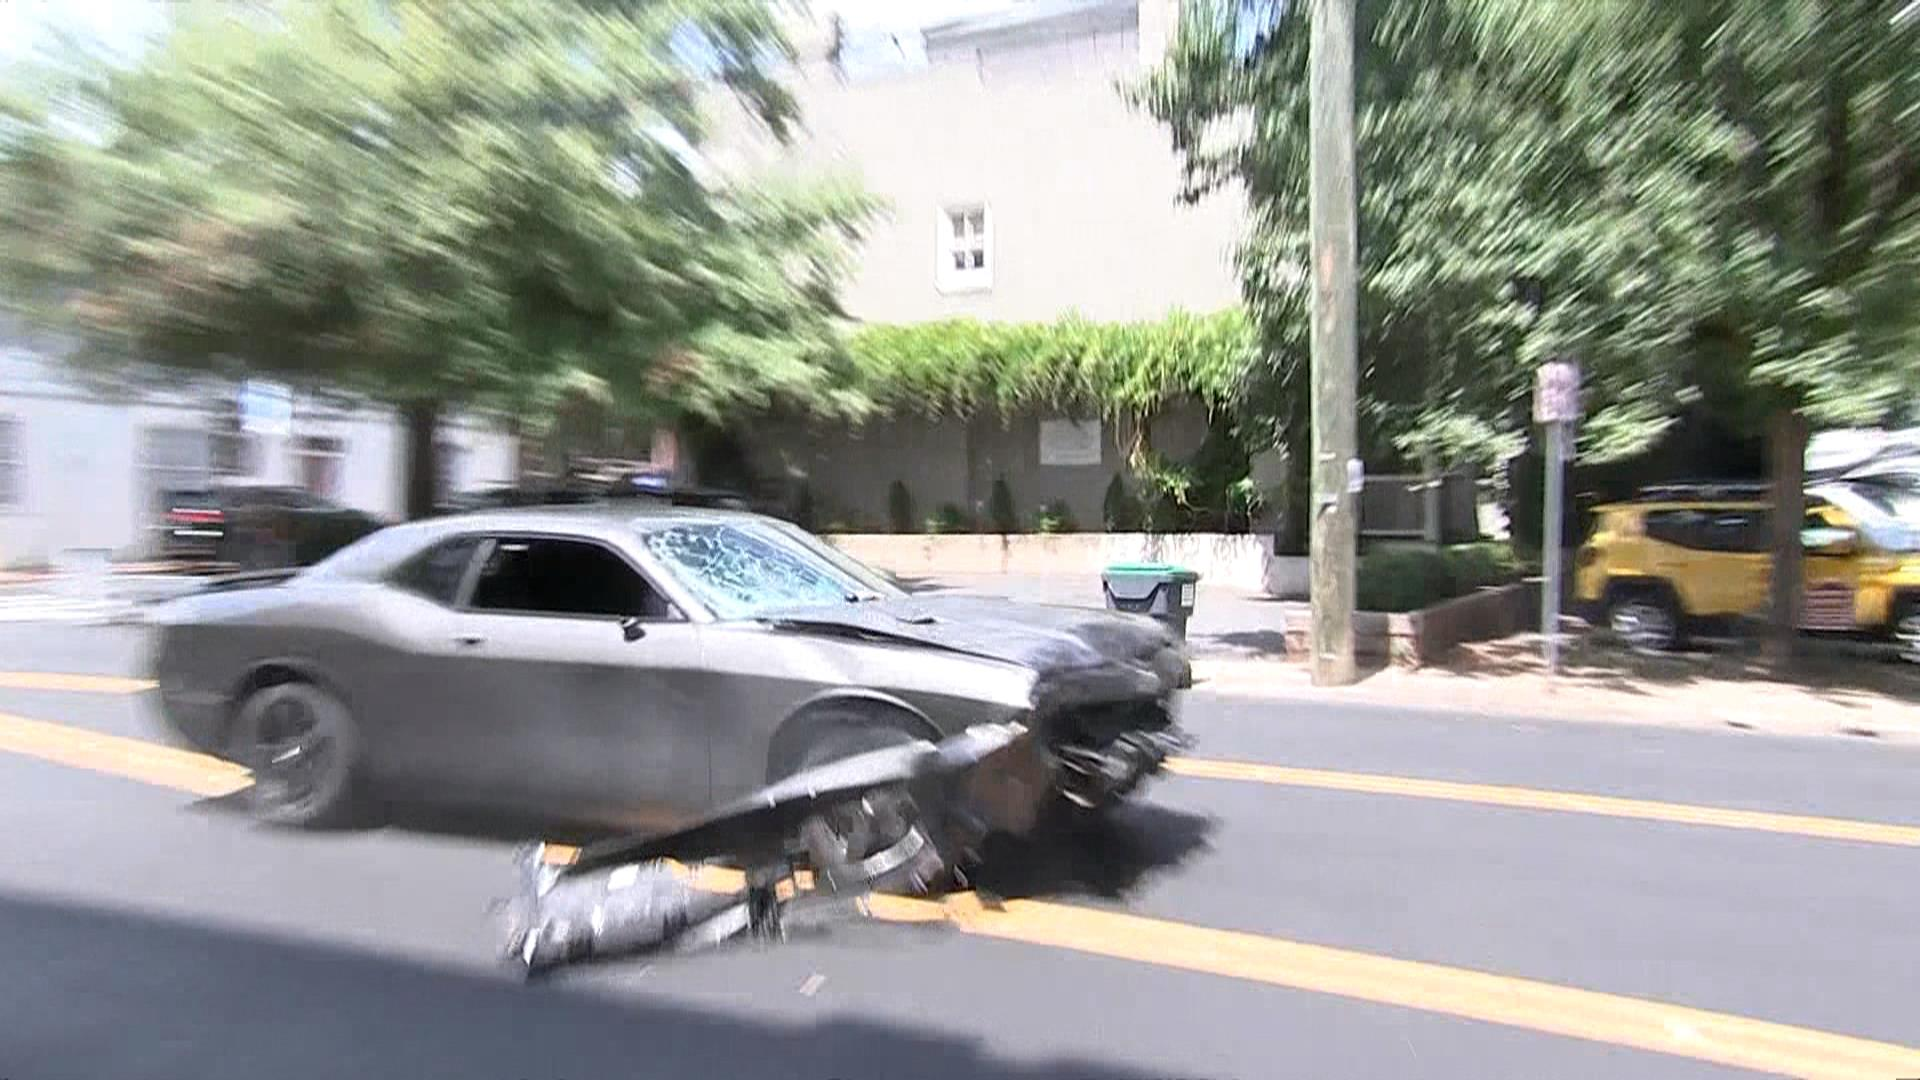 Gray Dodge Charger that plowed into crowd in Charlottesvile spotted ...